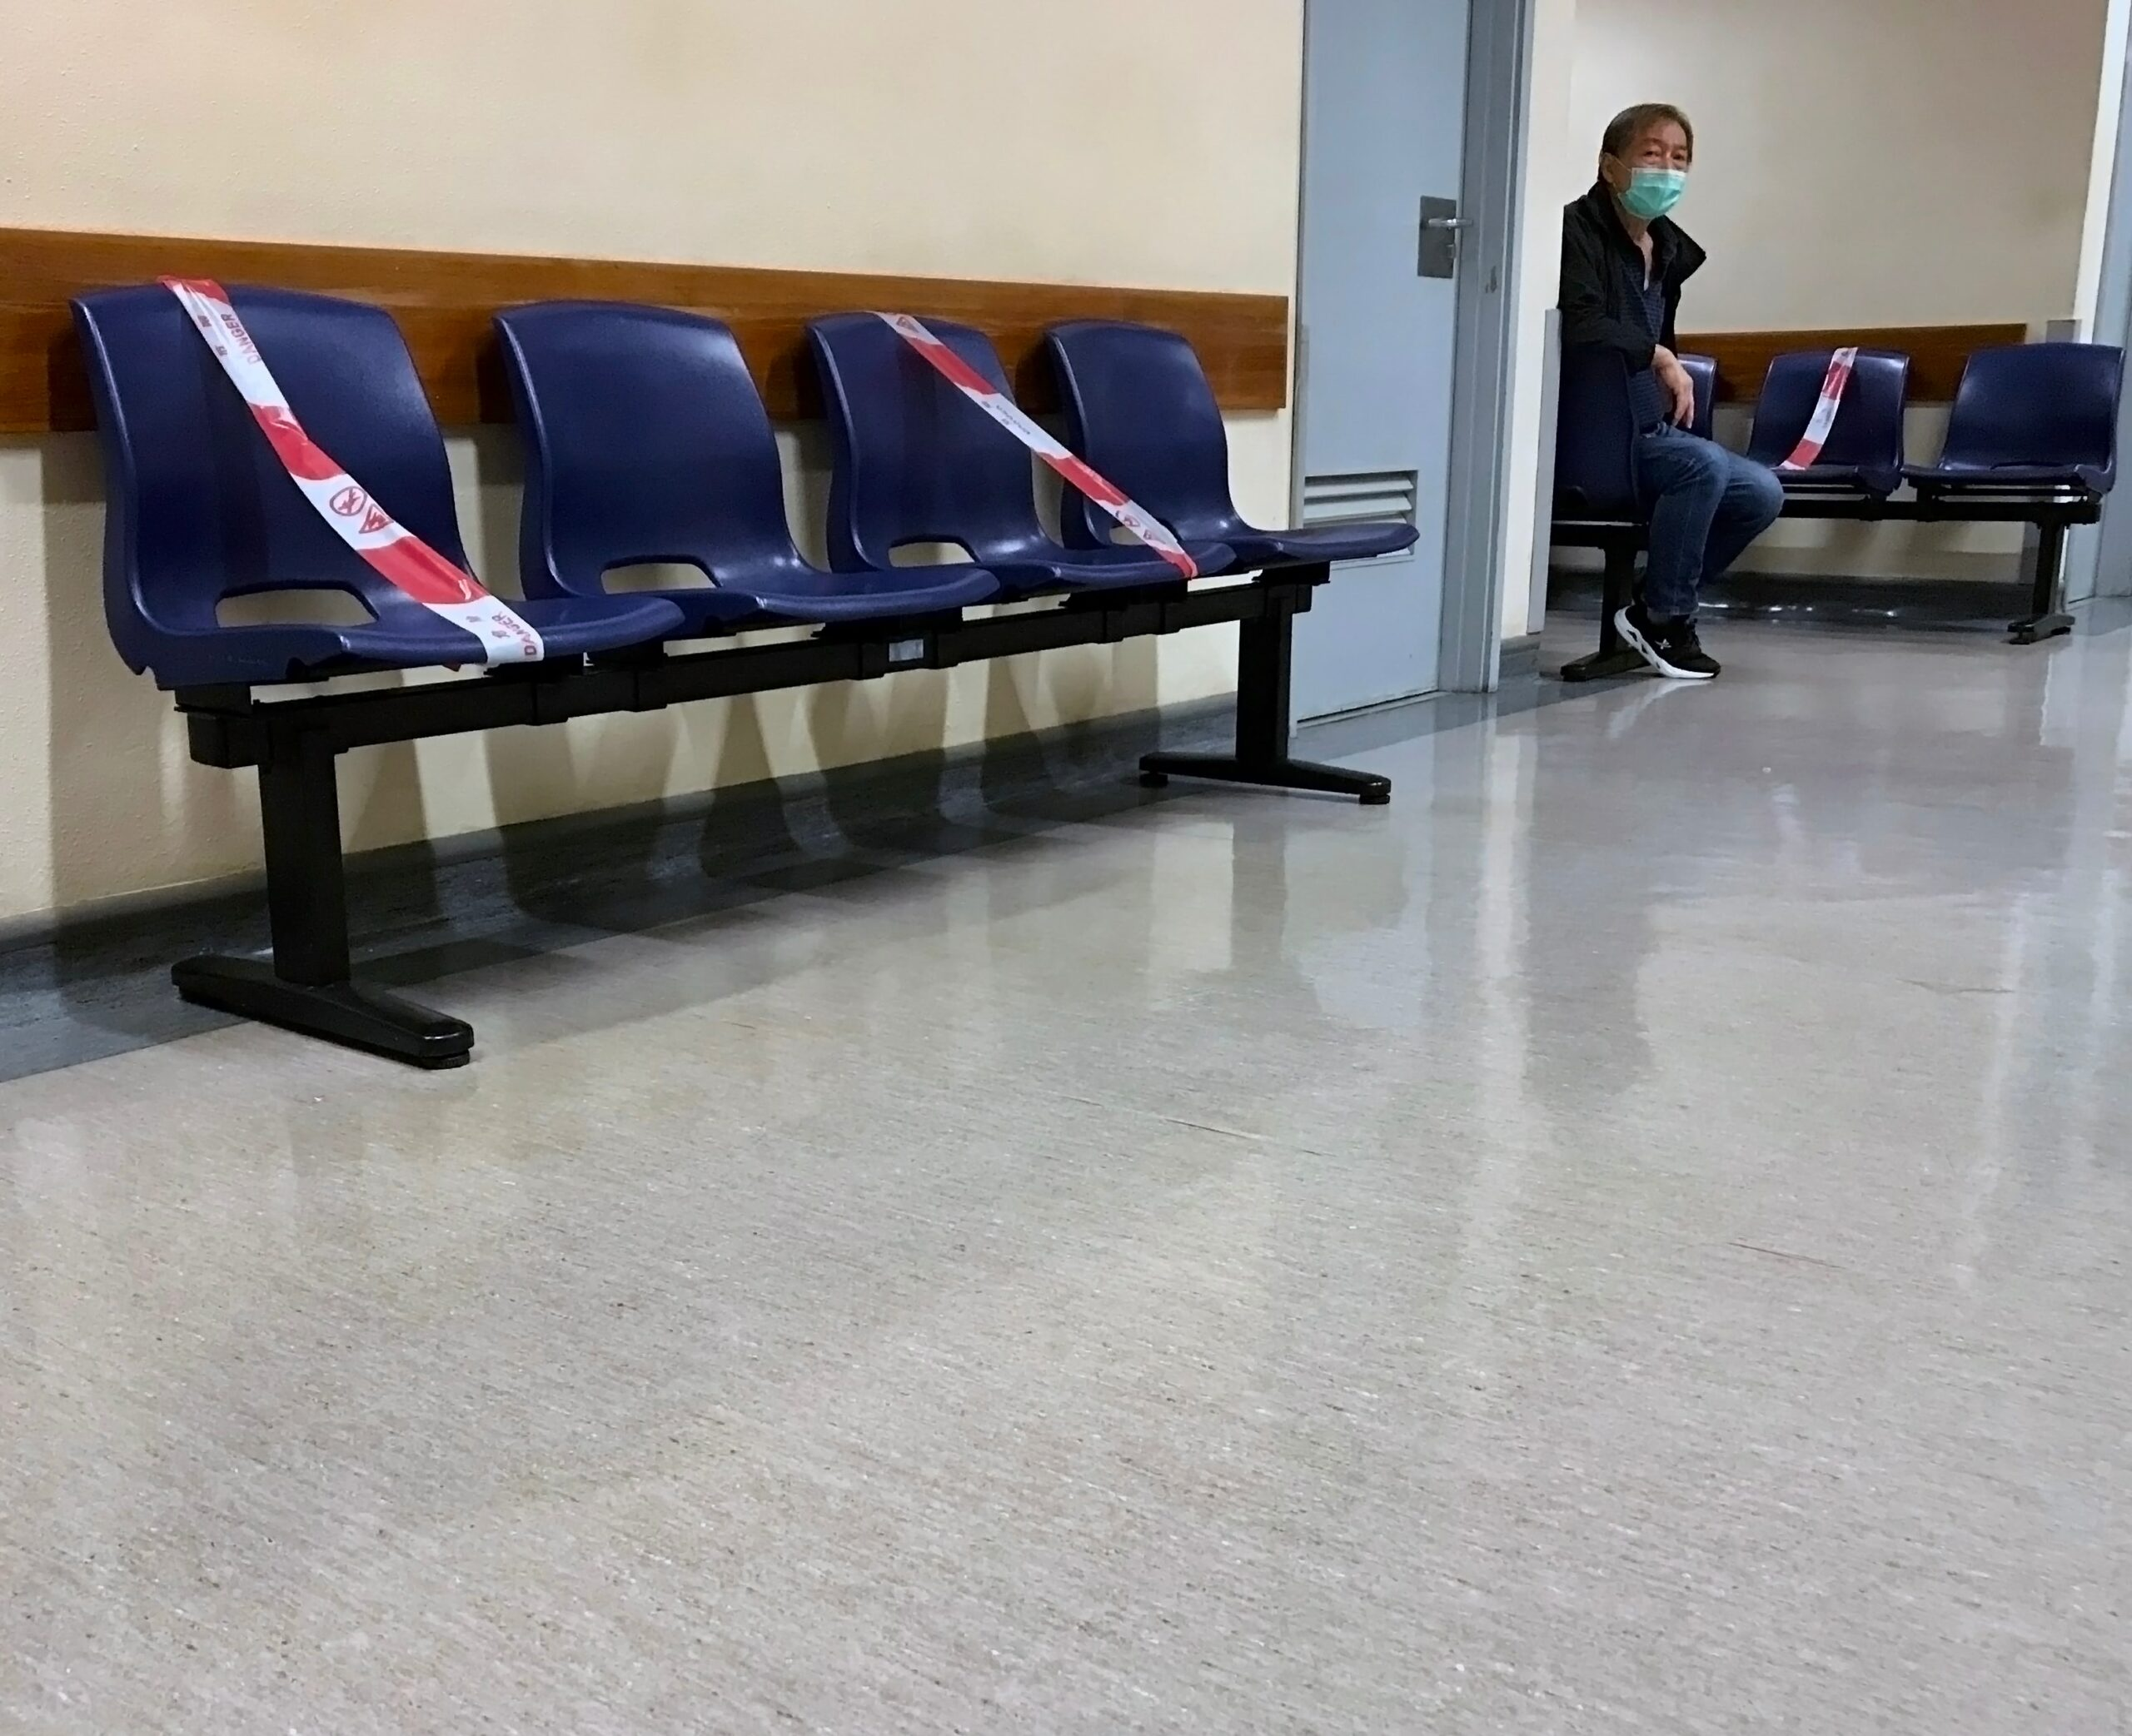 services need to see a backlog of patients